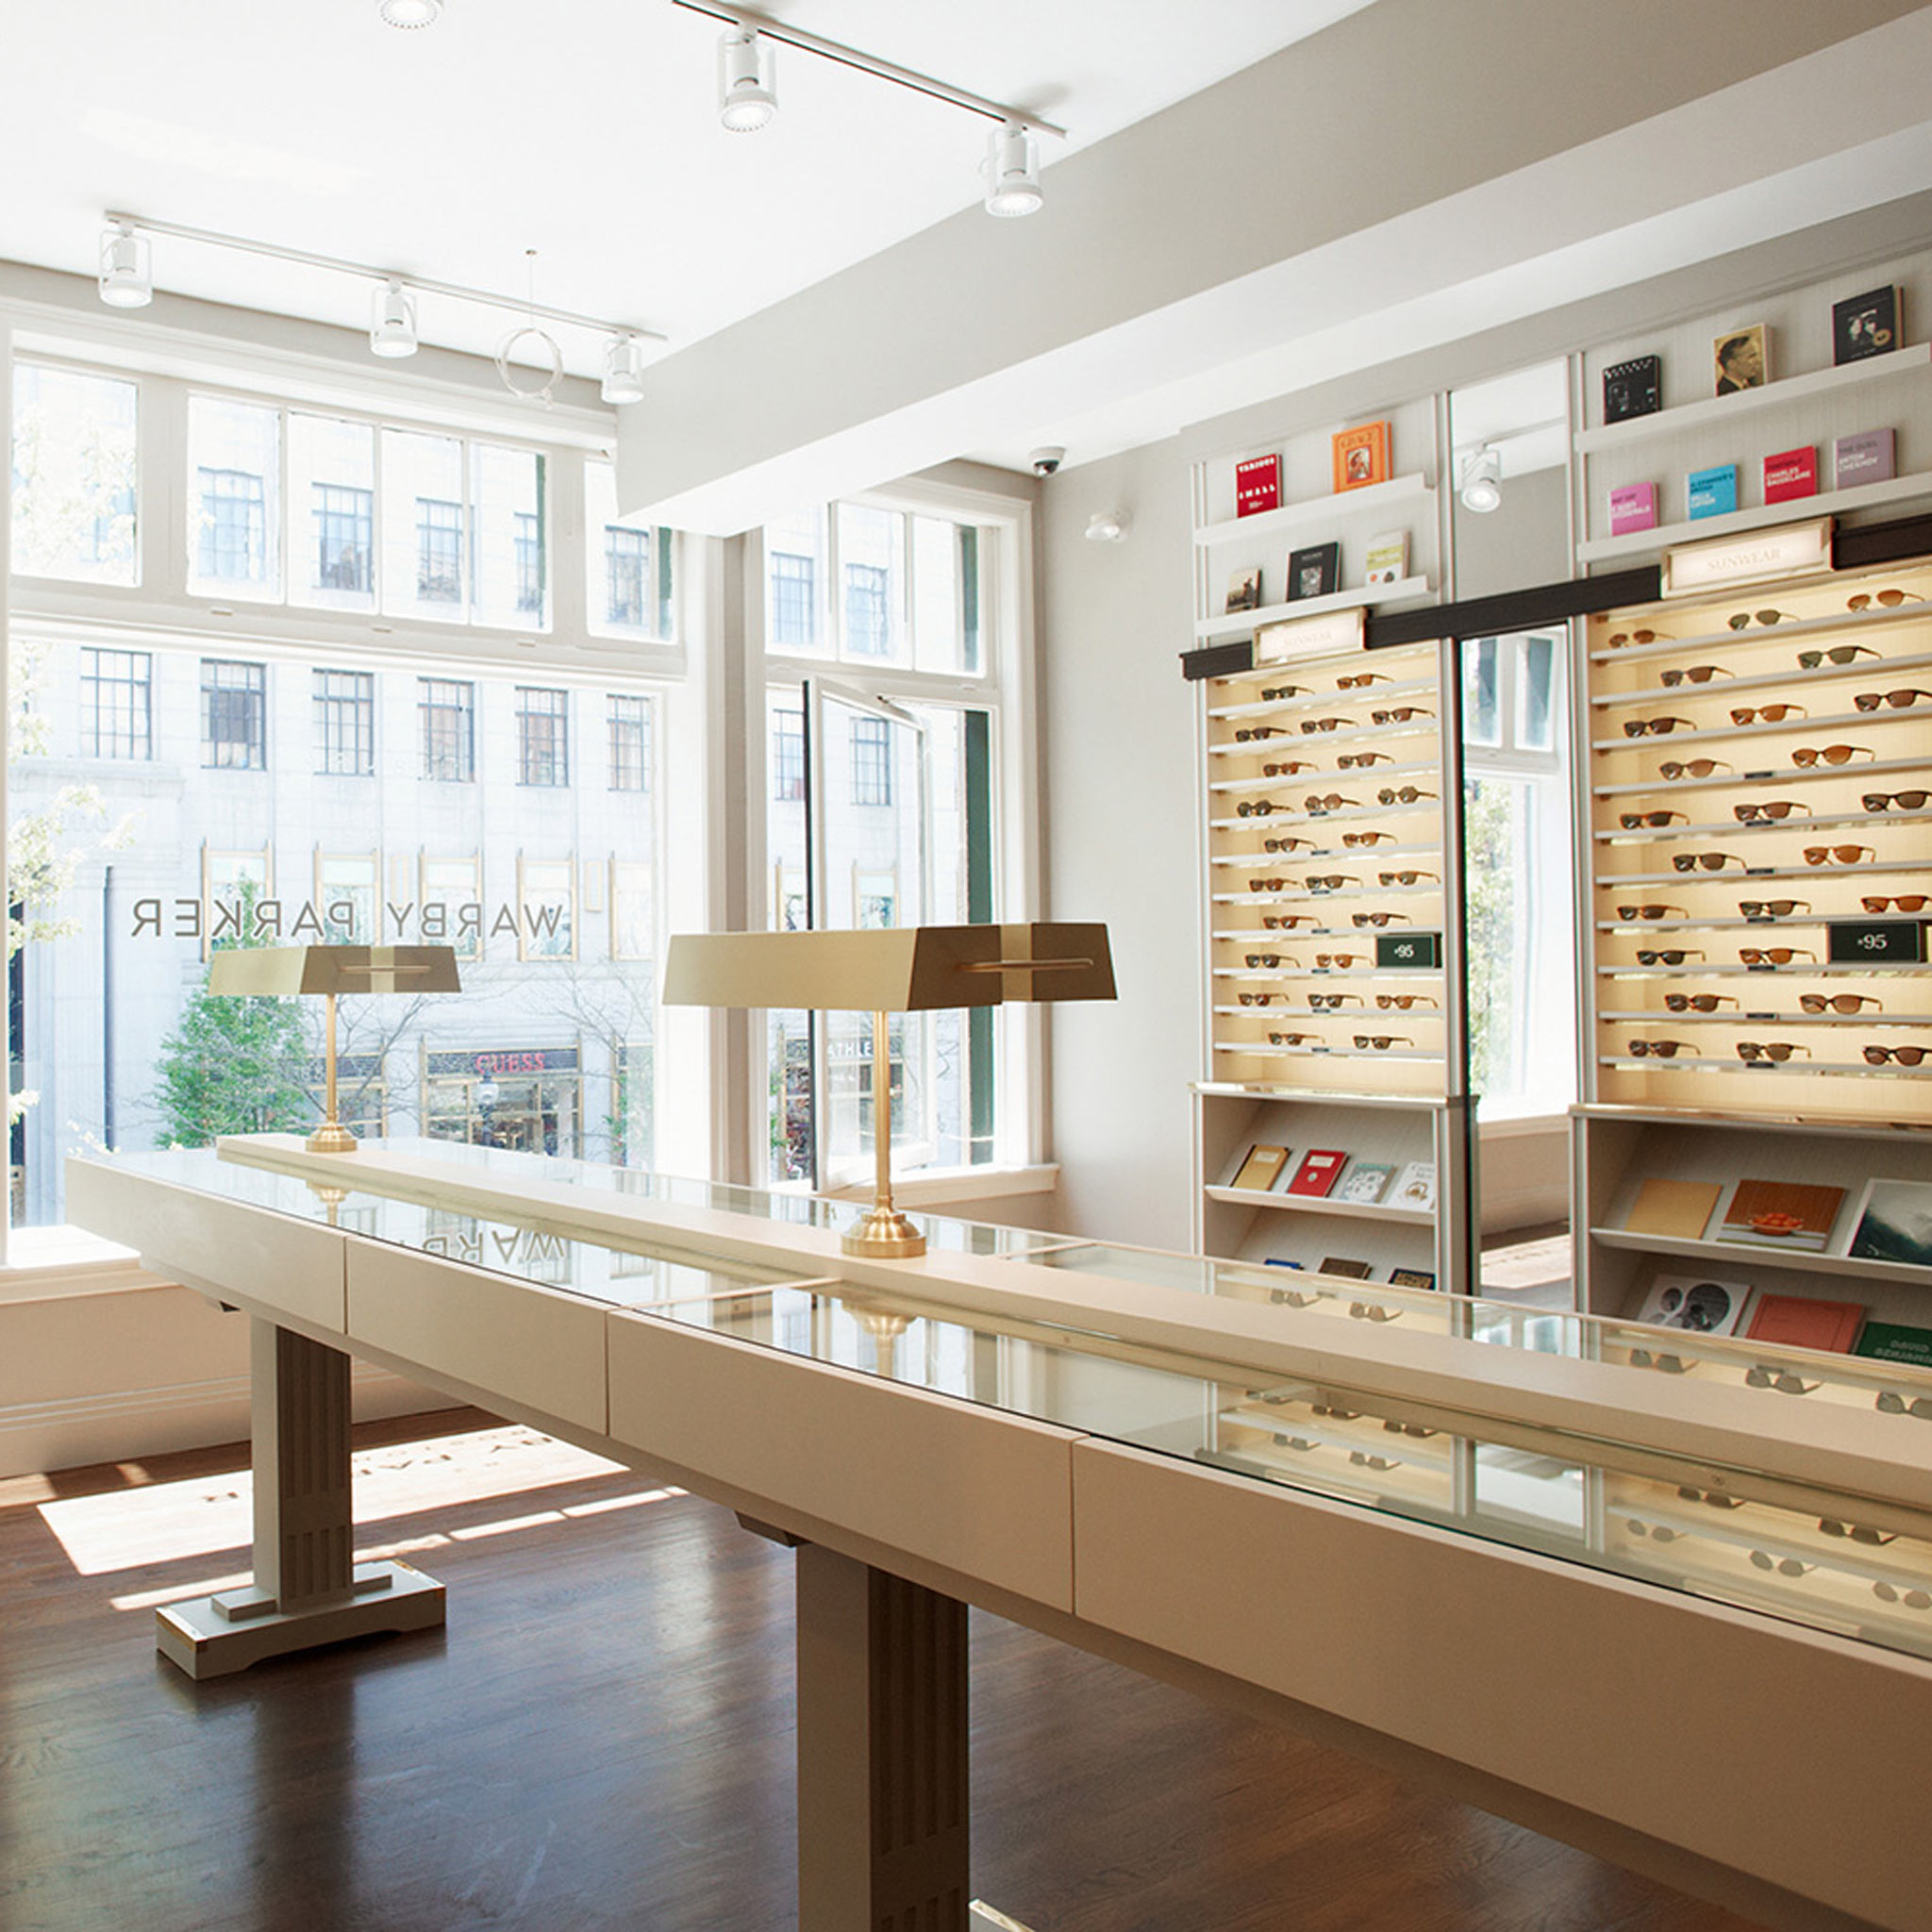 warby-parker-national-4.jpg